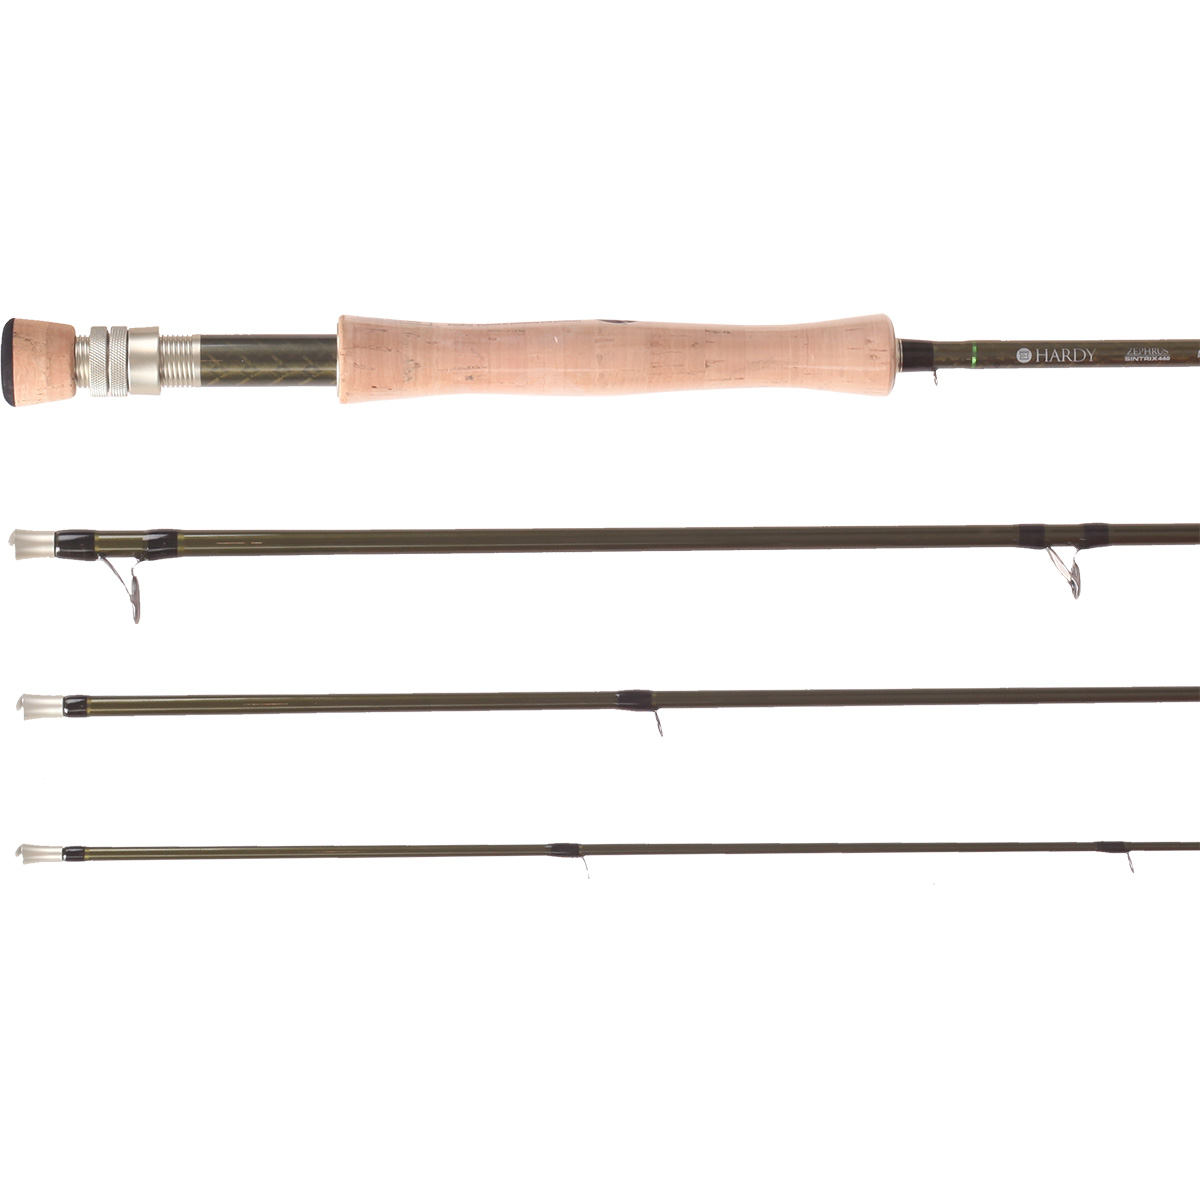 Hardy zephrus aws fly fishing rods for Fly fishing rods